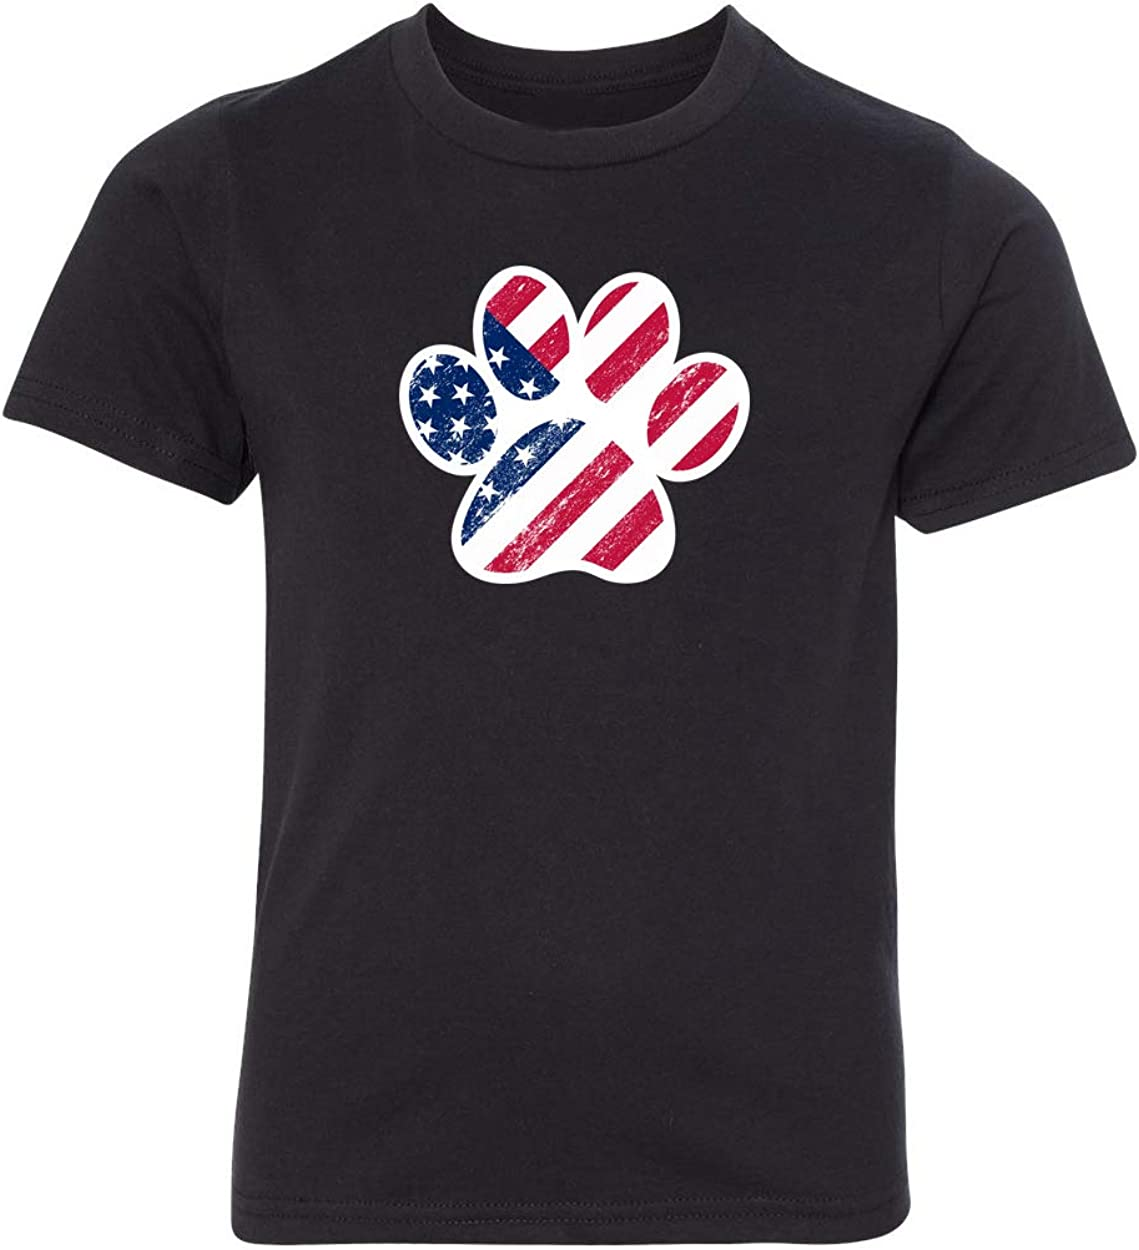 American Flag Dog Paw Kids Graphic T-Shirts 4th of July T-Shirts